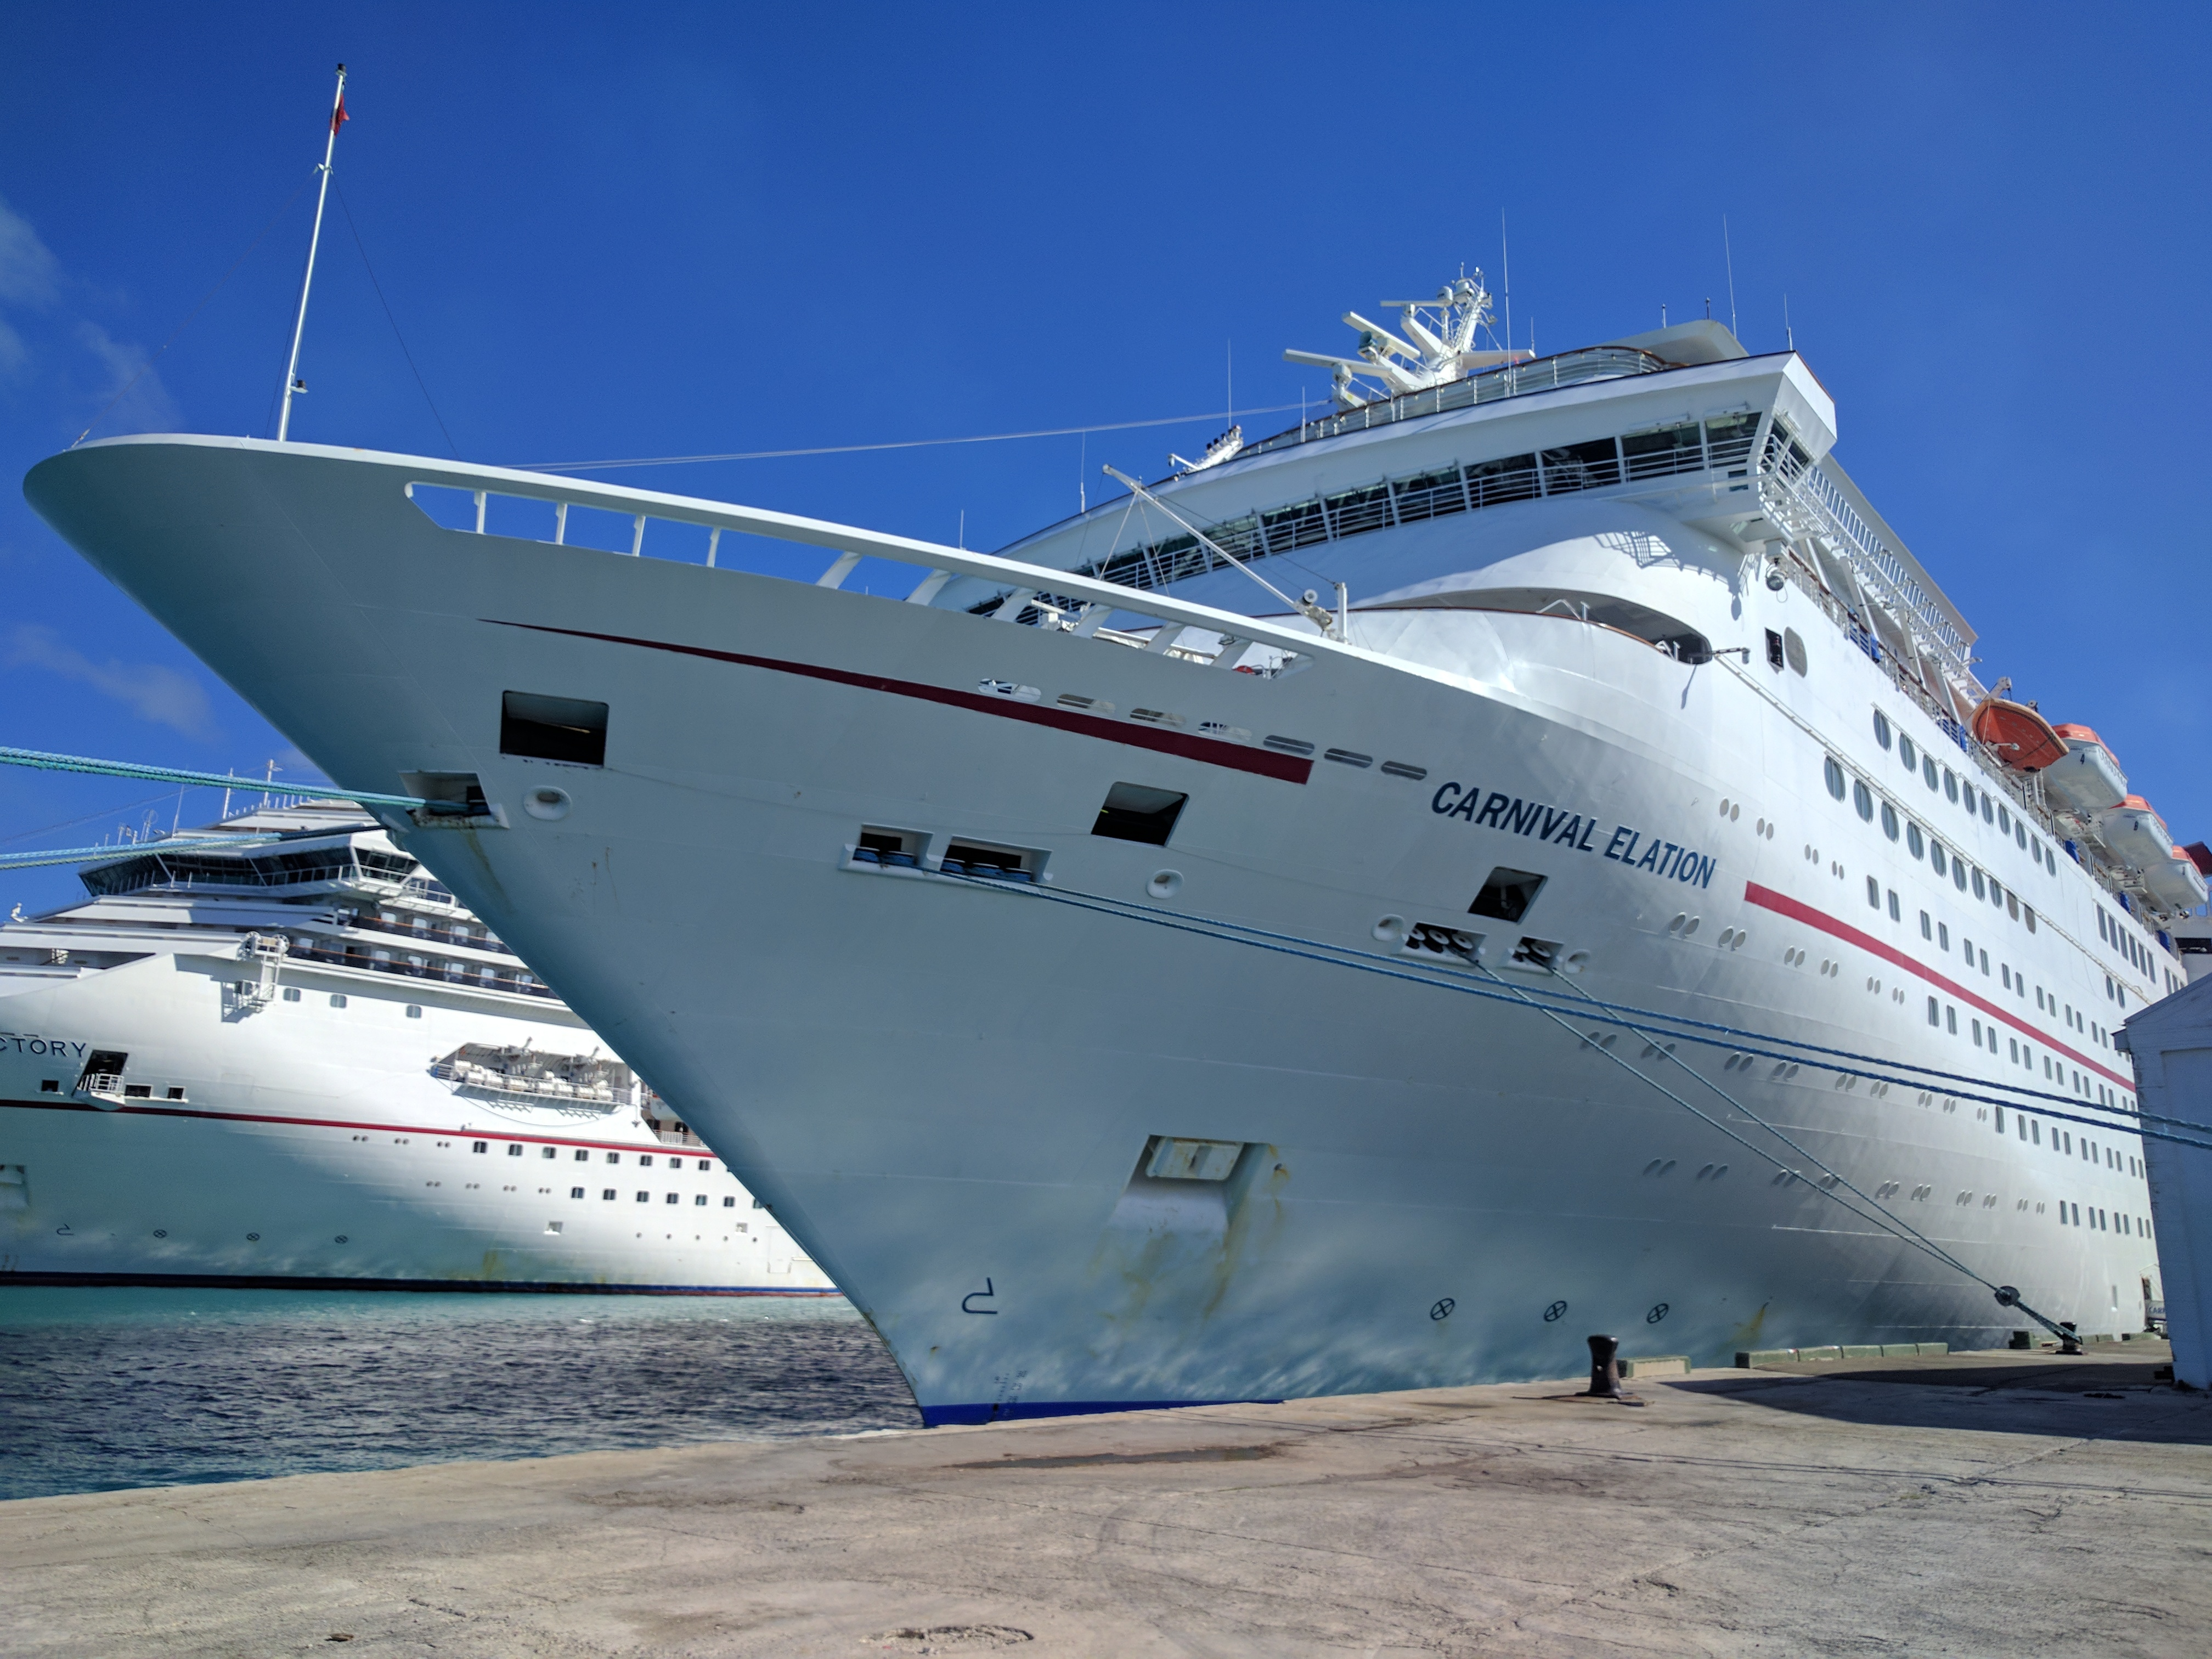 Search for man missing from Carnival Elation cruise ship called off - YBW